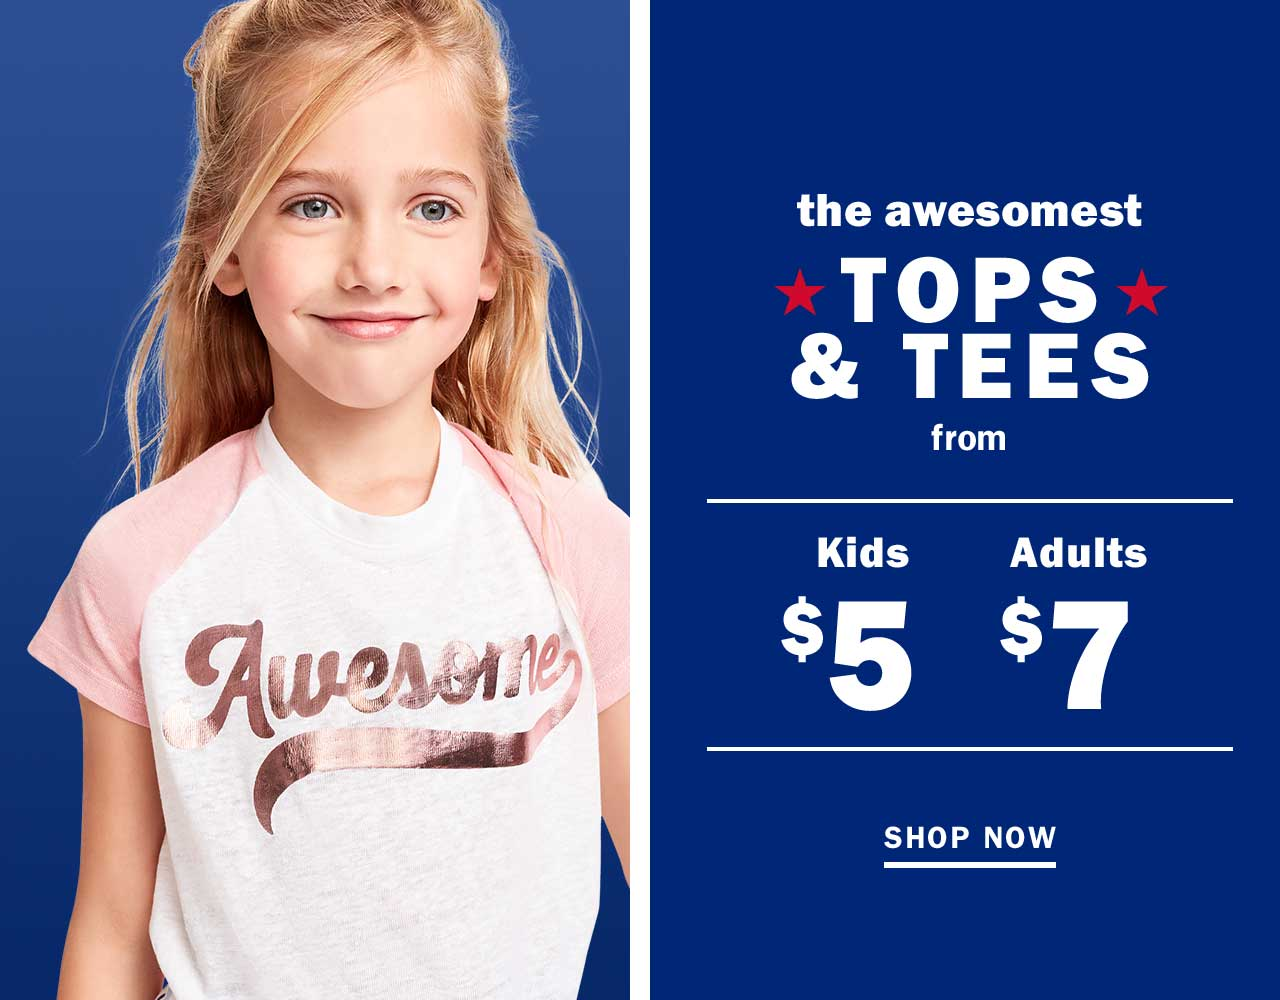 the awesomest Tops & TEES | SHOP NOW